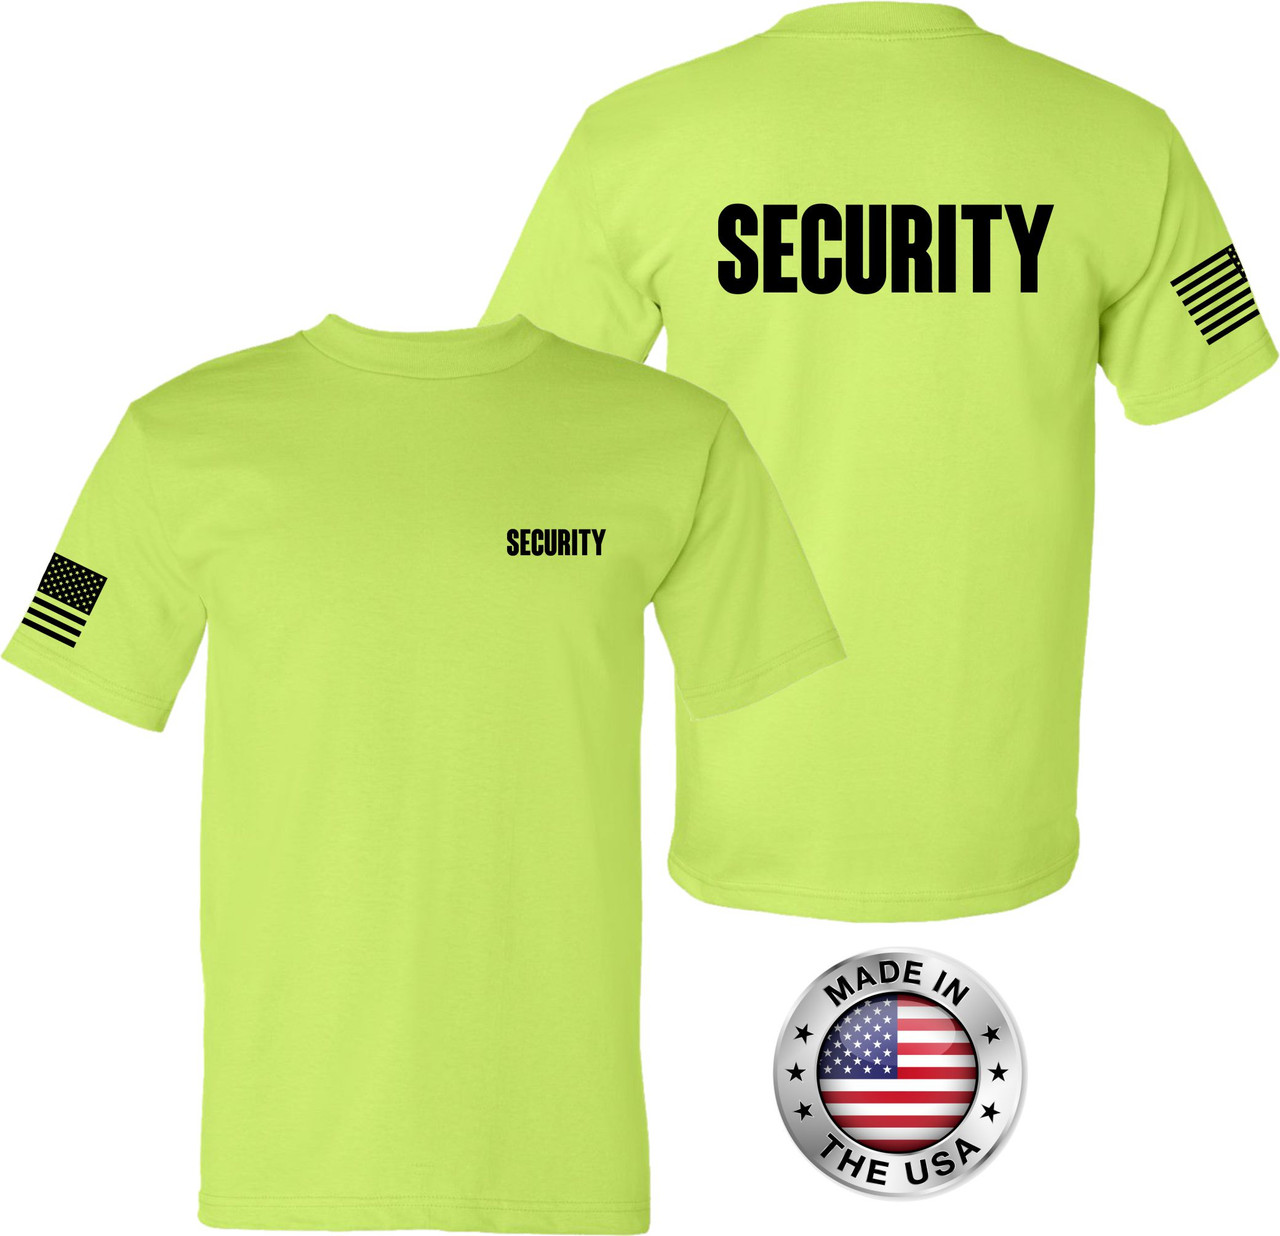 USA Made Safety Green Security Tee with American Flag on sleeve.